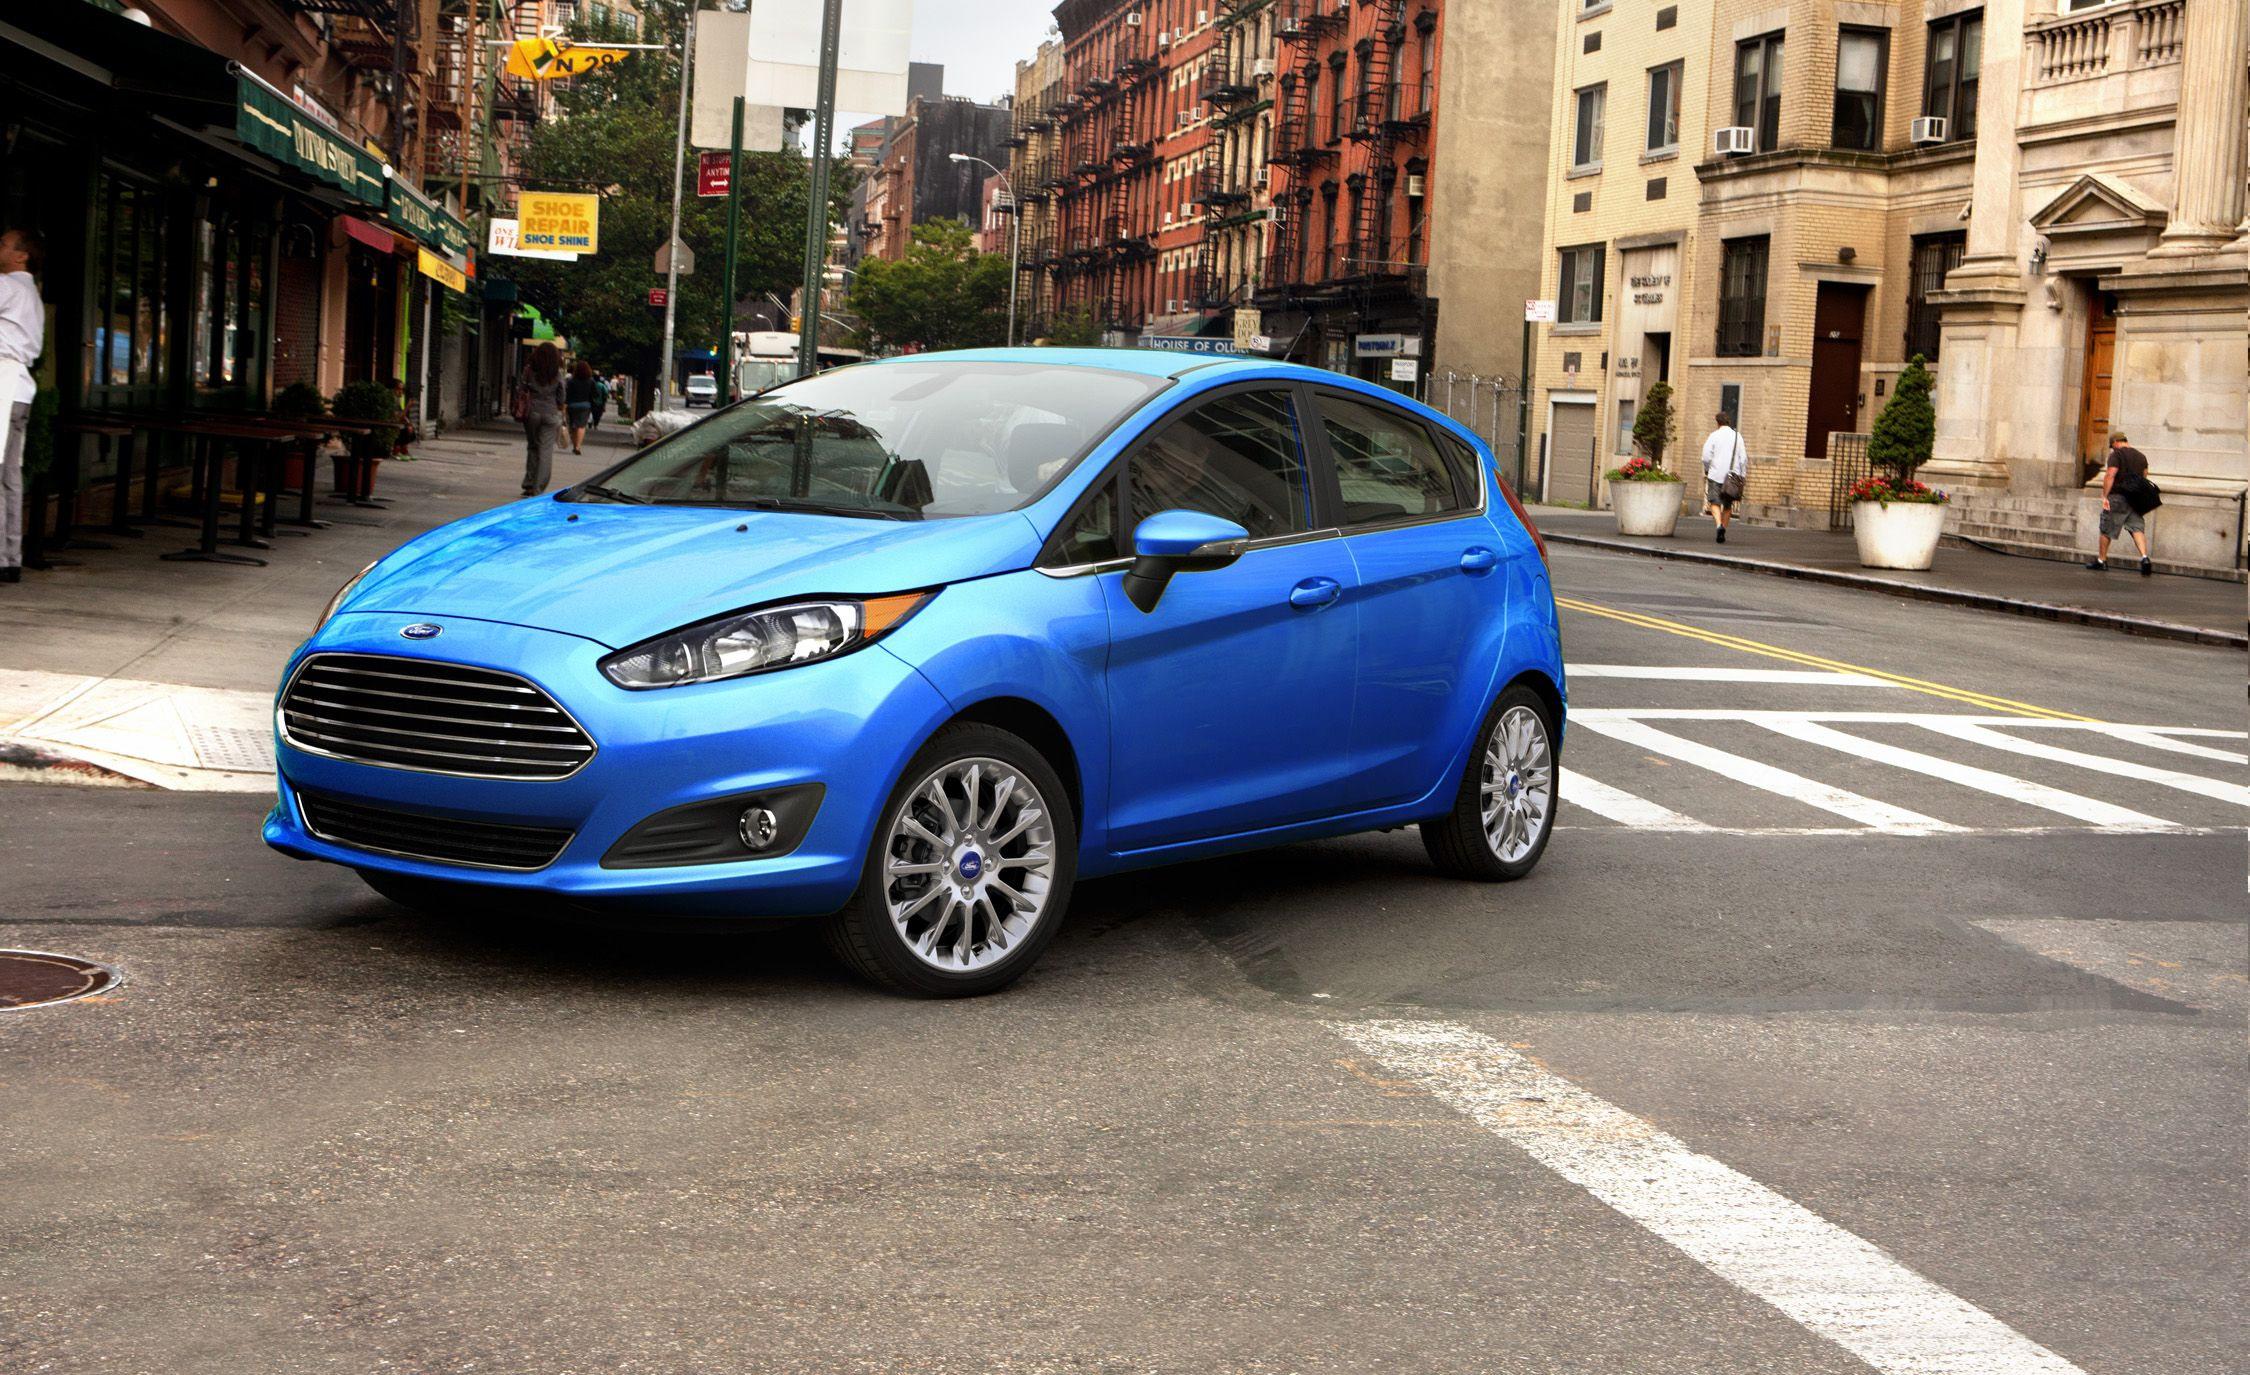 2017 Ford Fiesta Hatchback Automatic